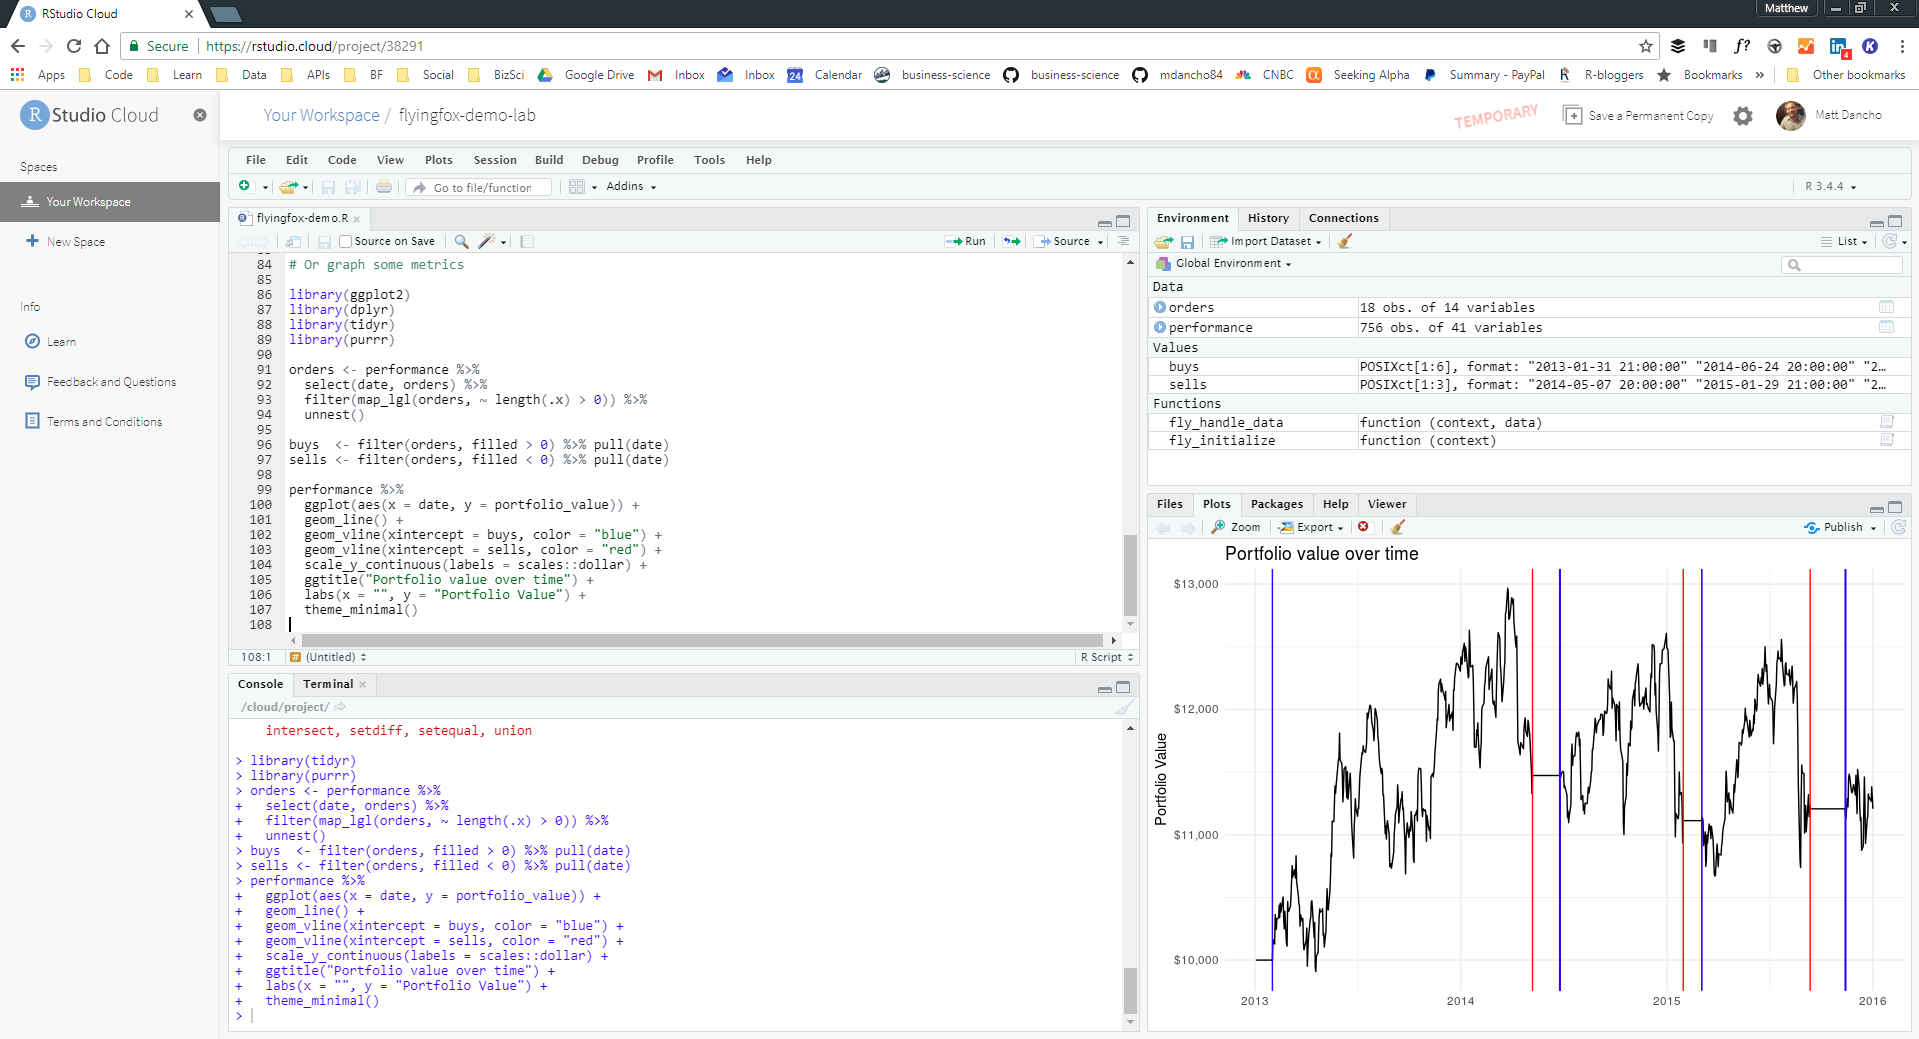 RStudio Cloud Sandbox